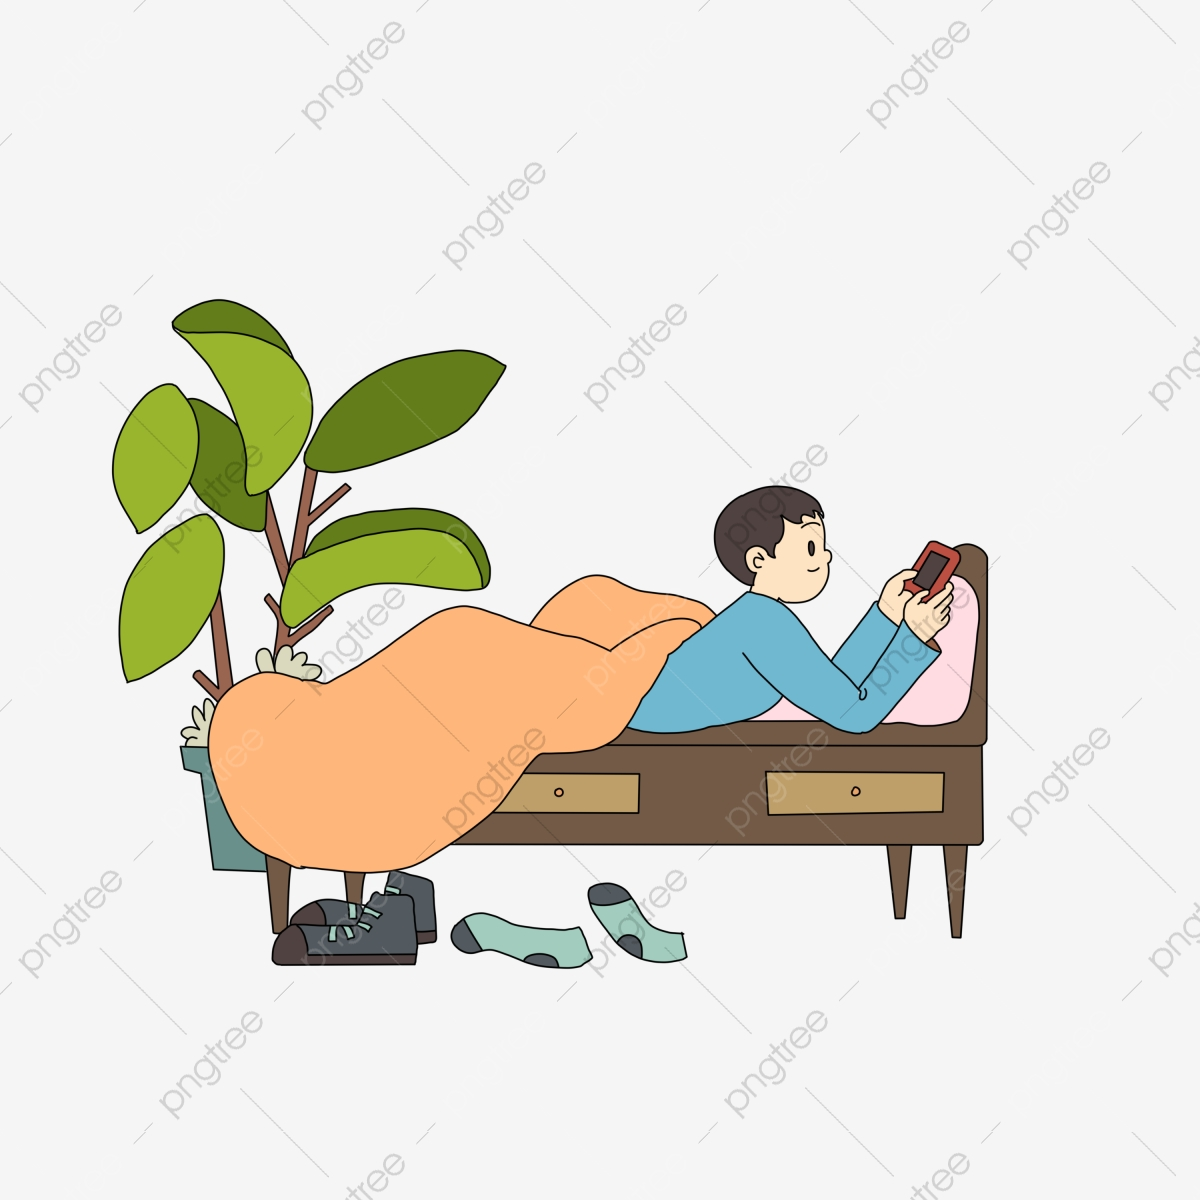 Cute Girl Reading Book In Bed Vector Illustration Stock Vector -  Illustration of literature, hobby: 142484393